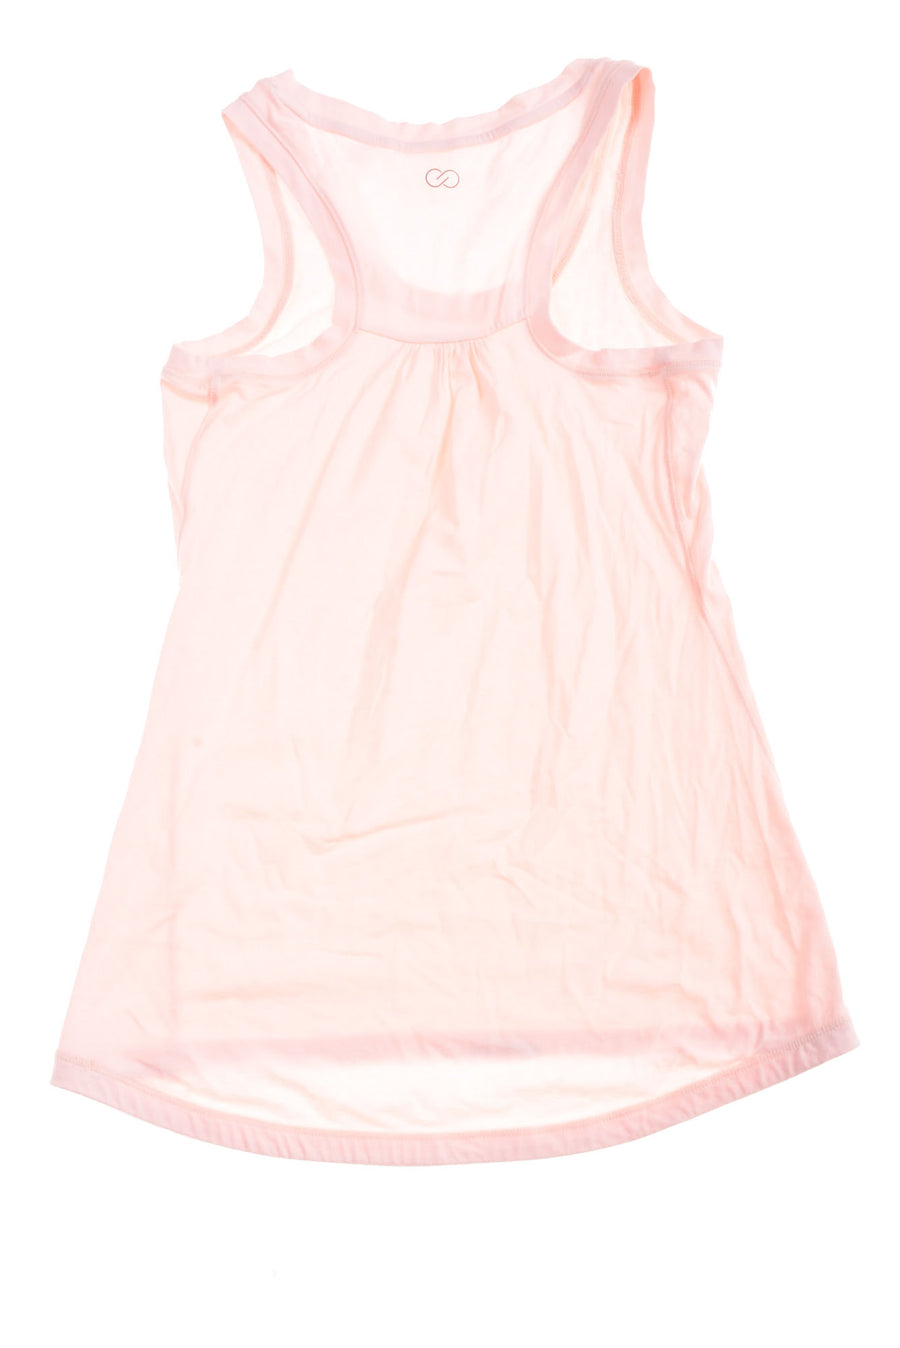 USED Calia Women's Top Small Pink